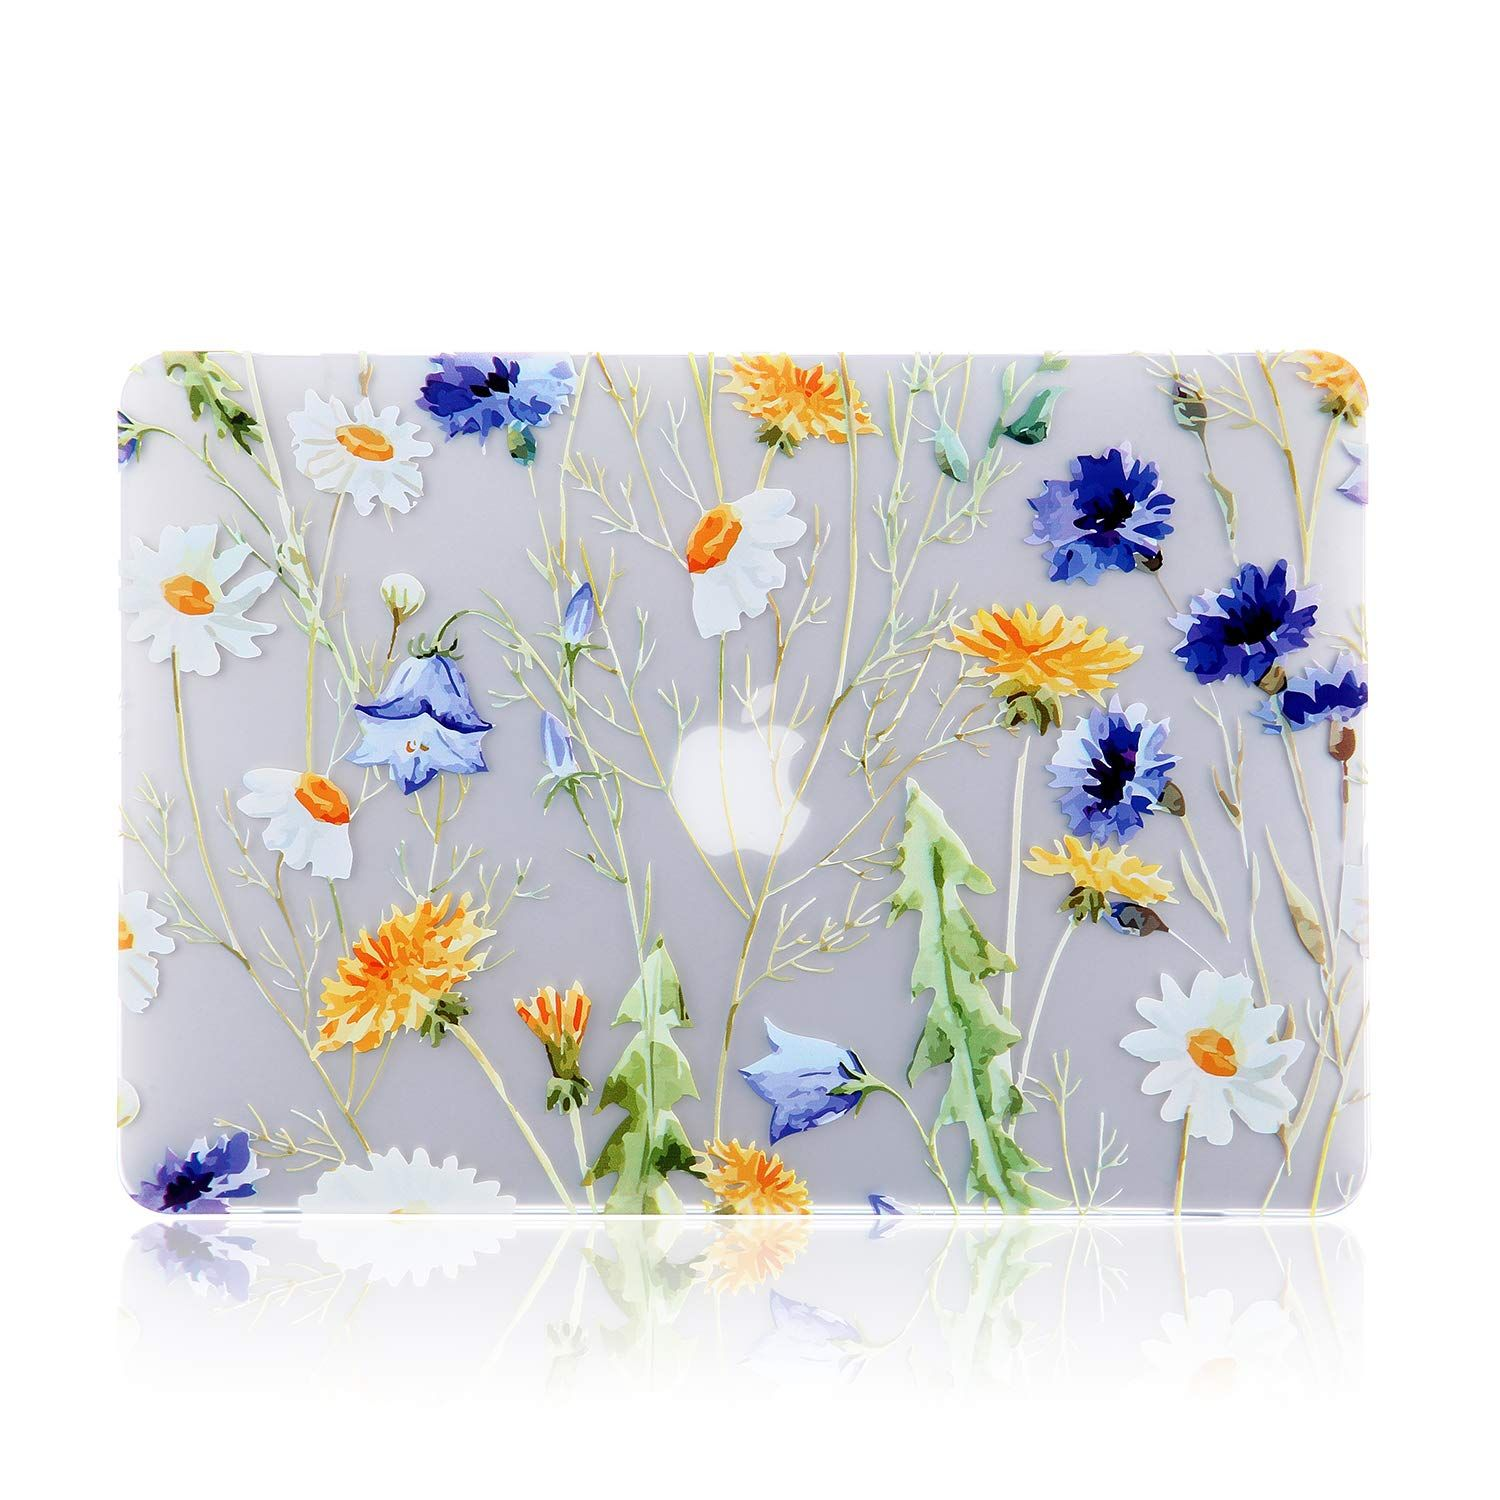 iDonzon MacBook Pro 13 inch Case 2008-2012 Release, 3D Effect Matte See Through Hard Case Cover Only Compatible MacBook Pro 13 inch with CD-ROM (Model: A1278) - Floral Pattern